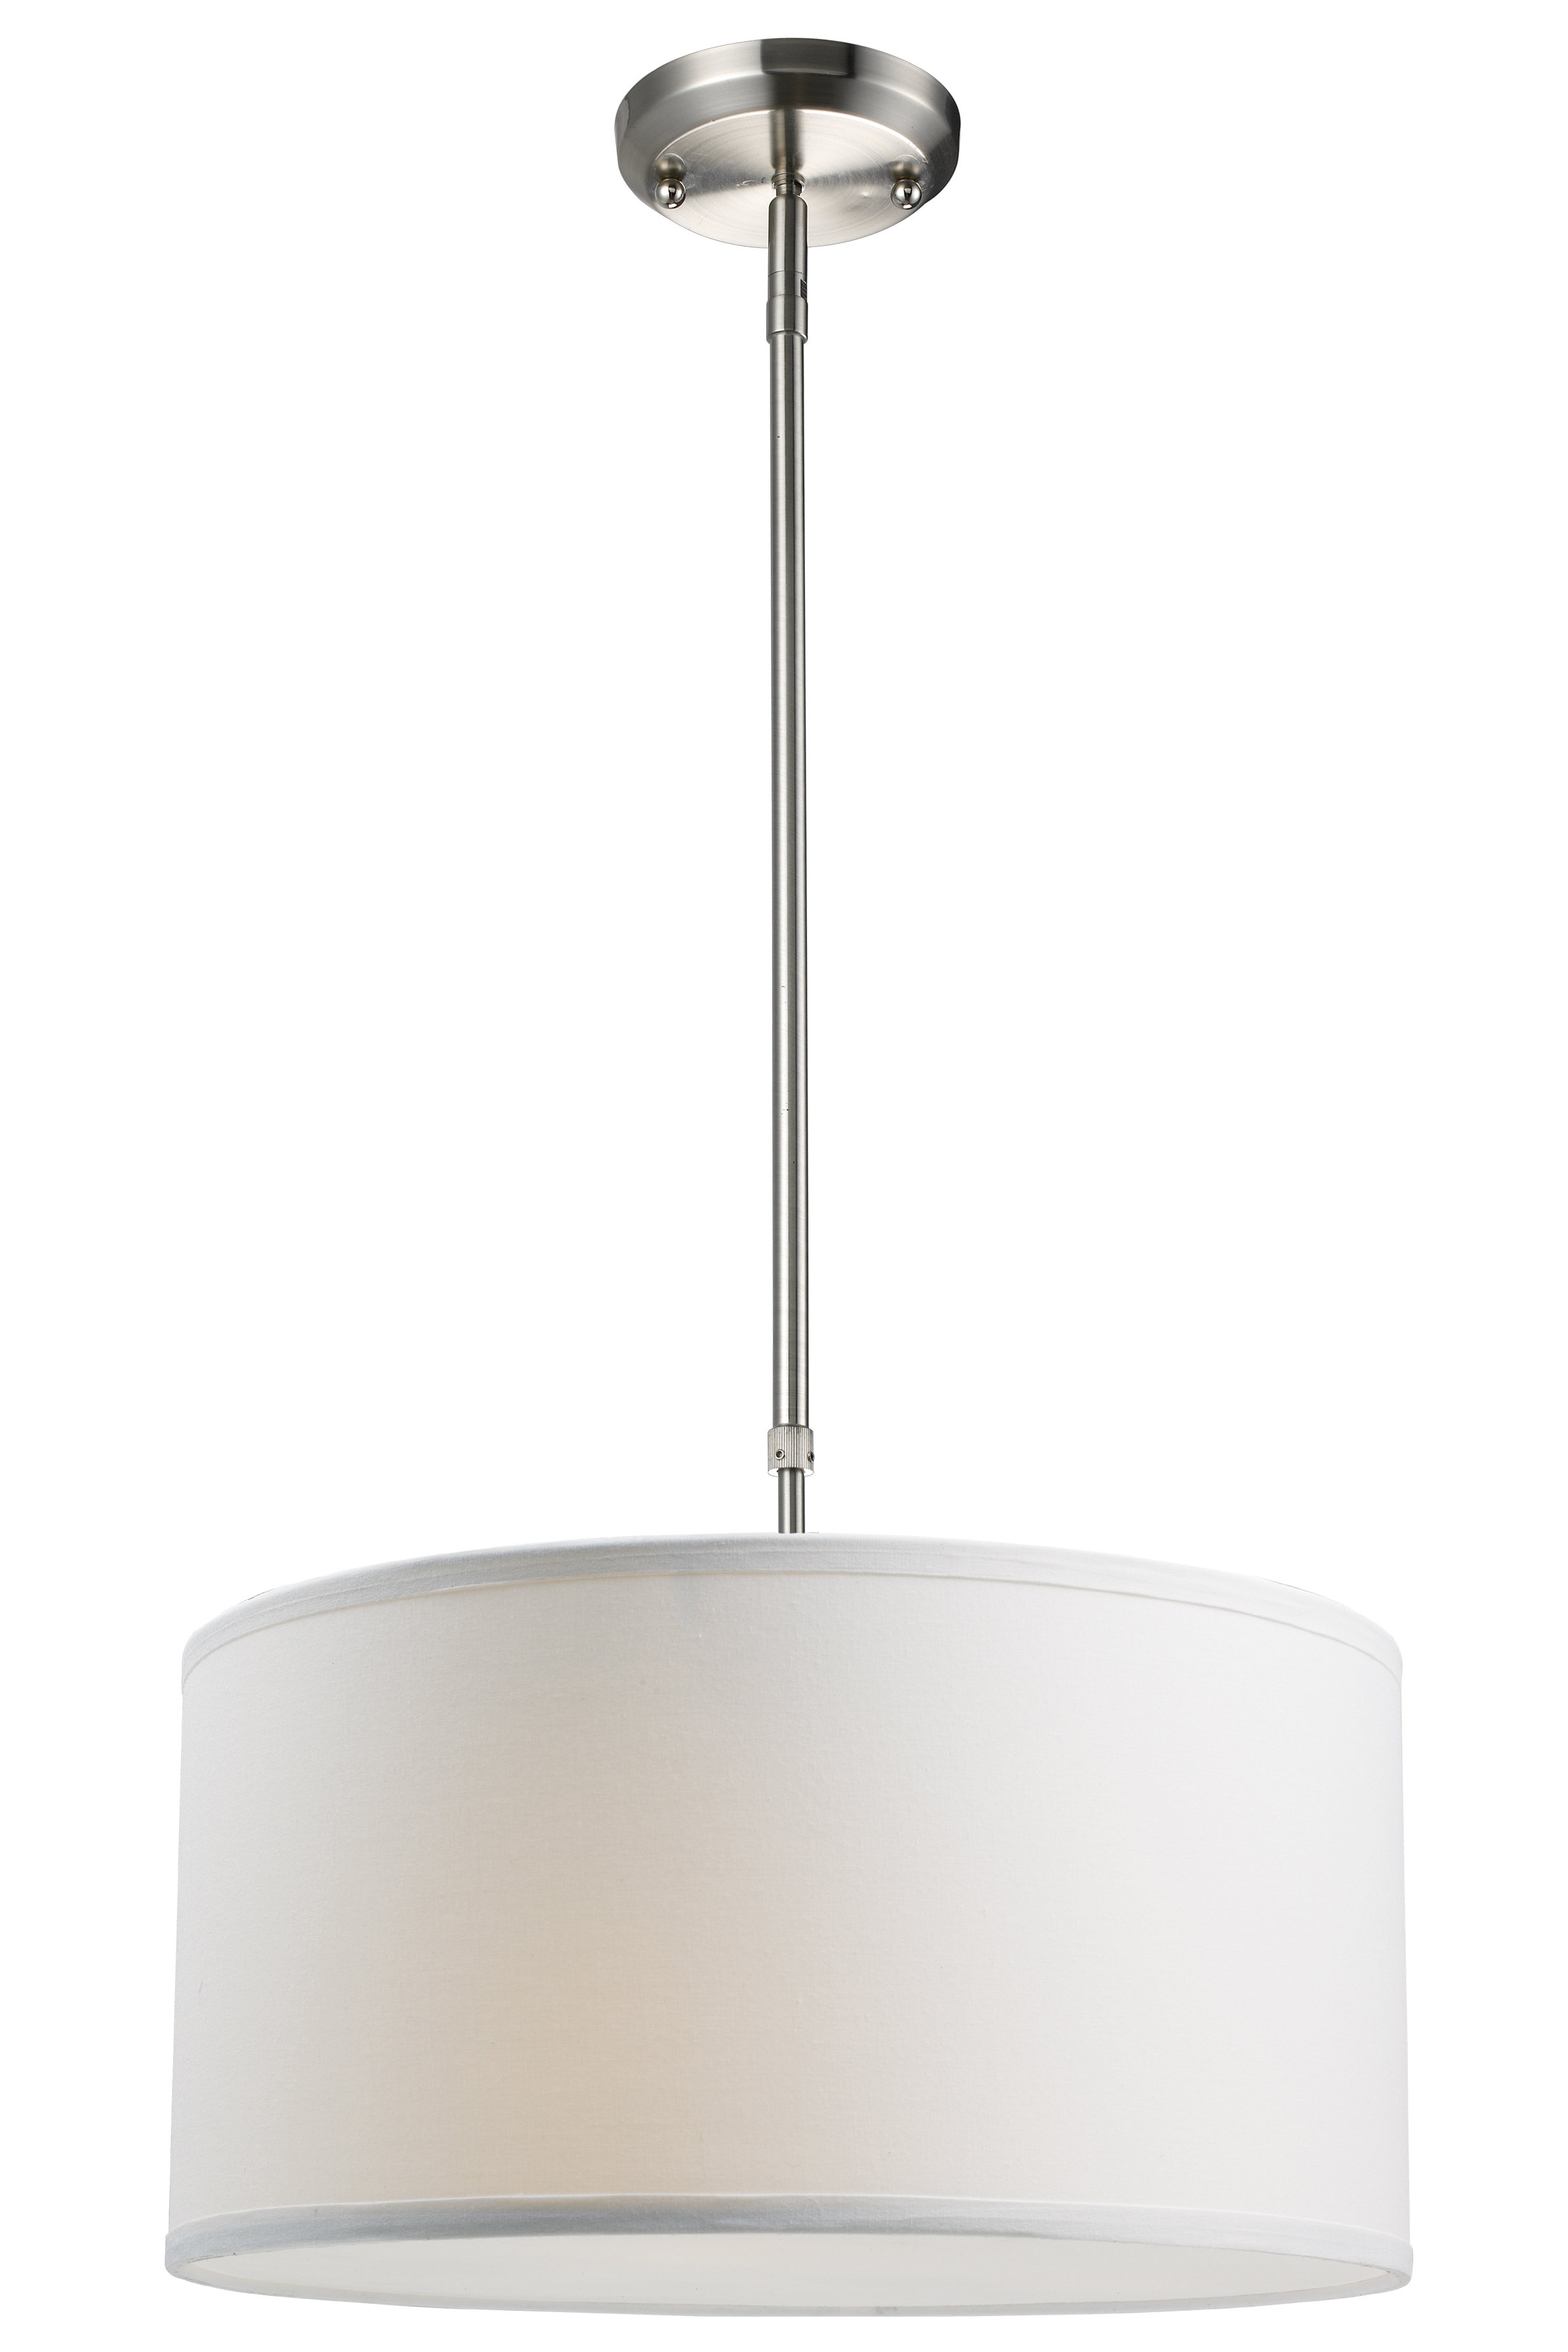 Kasey 3 Light Single Drum Pendant Intended For Most Up To Date Friedland 3 Light Drum Tiered Pendants (View 12 of 20)